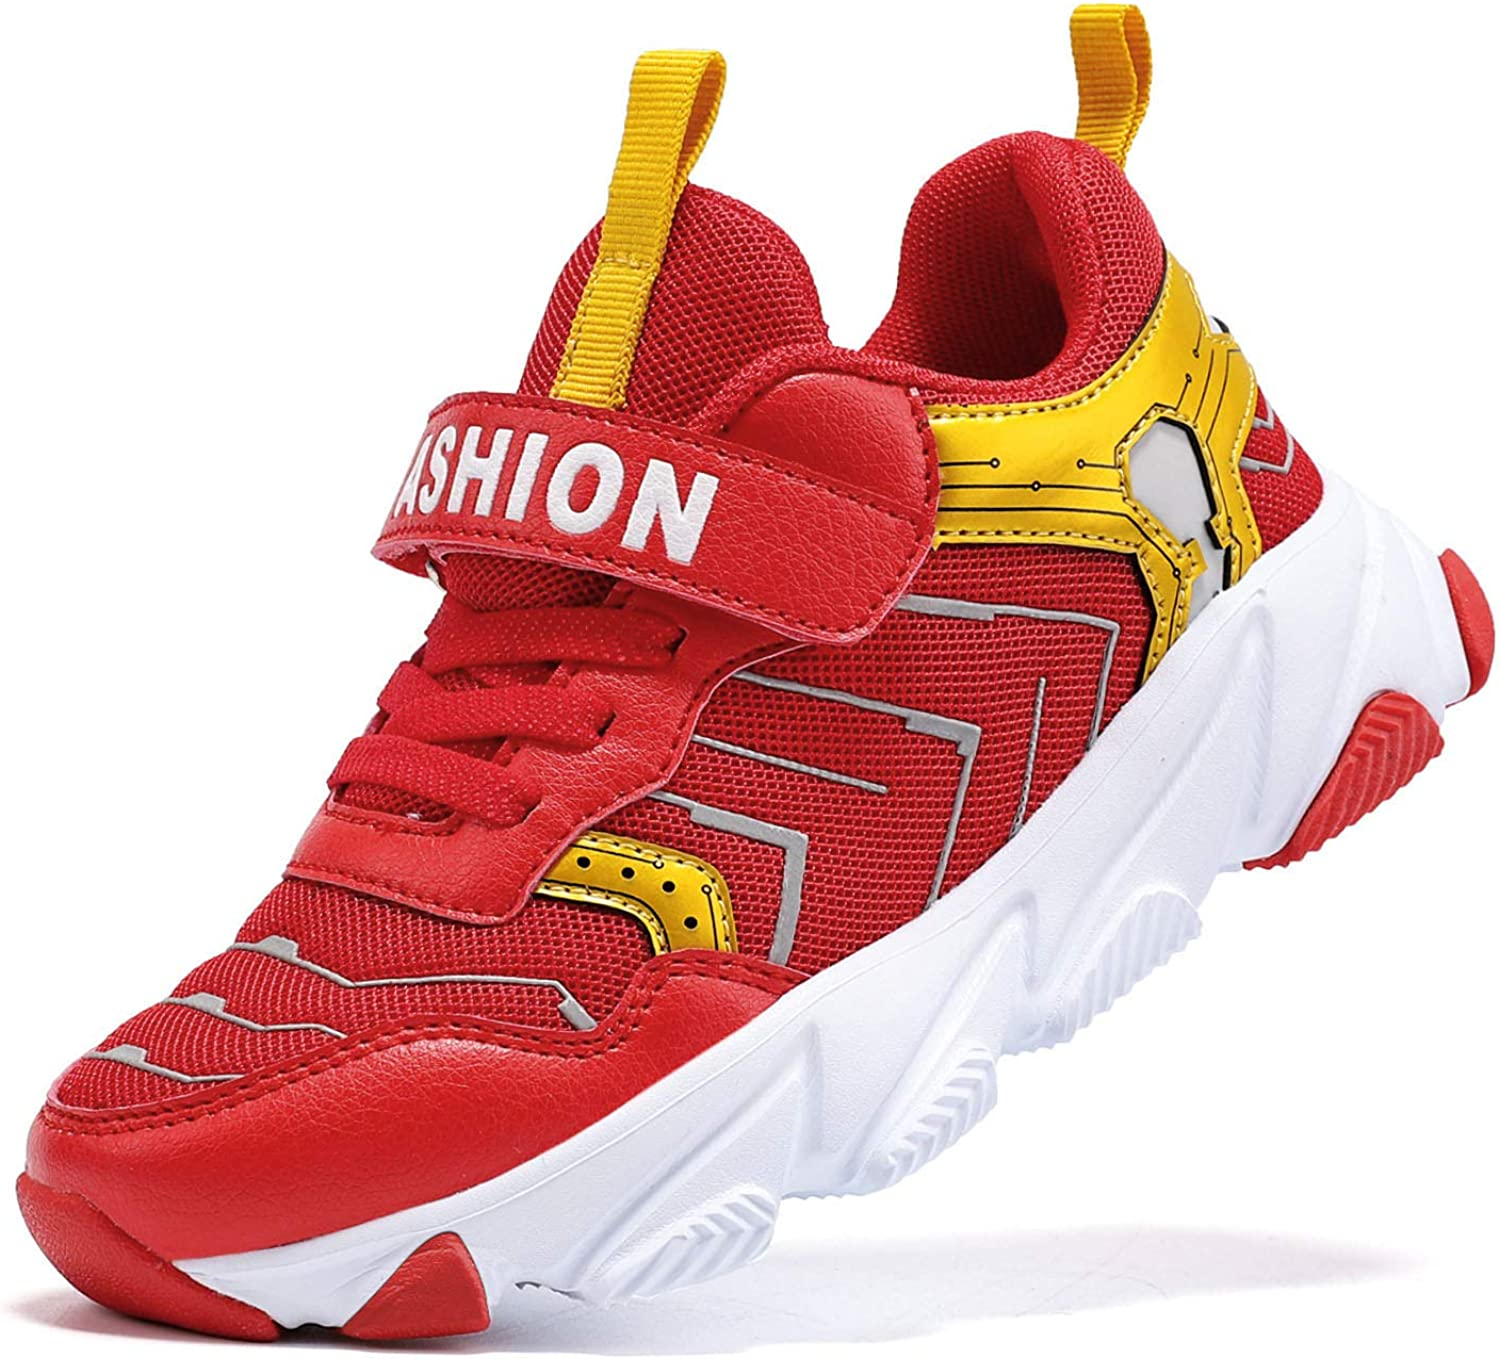 Boys Shoes Slip On Shoes for Boys Easy to Put On Kids Sneakers No Tie/Lace Boys Tennis Athletic Running Shoes